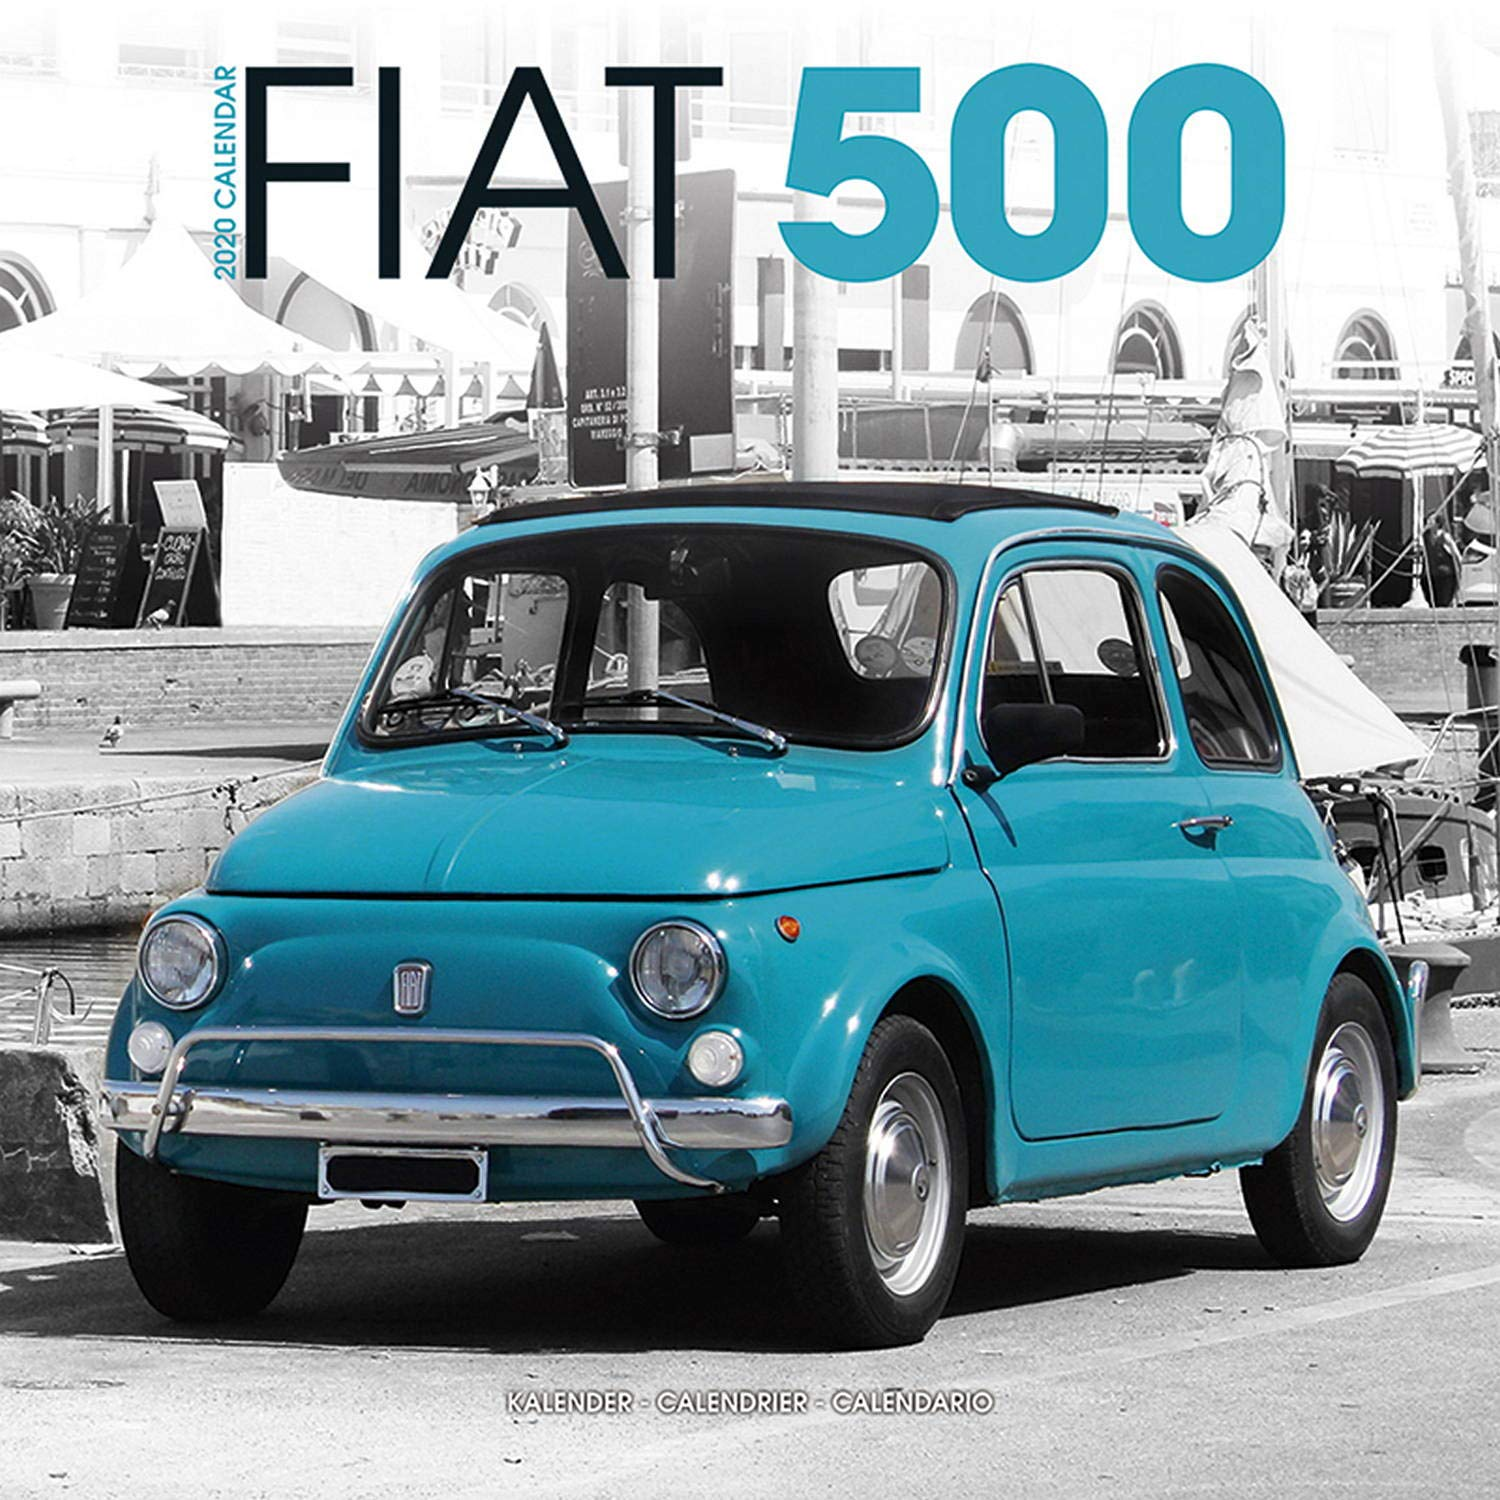 Calendrier Fun Car 2020.Fiat 500 Calendar Calendars 2019 2020 Wall Calendars